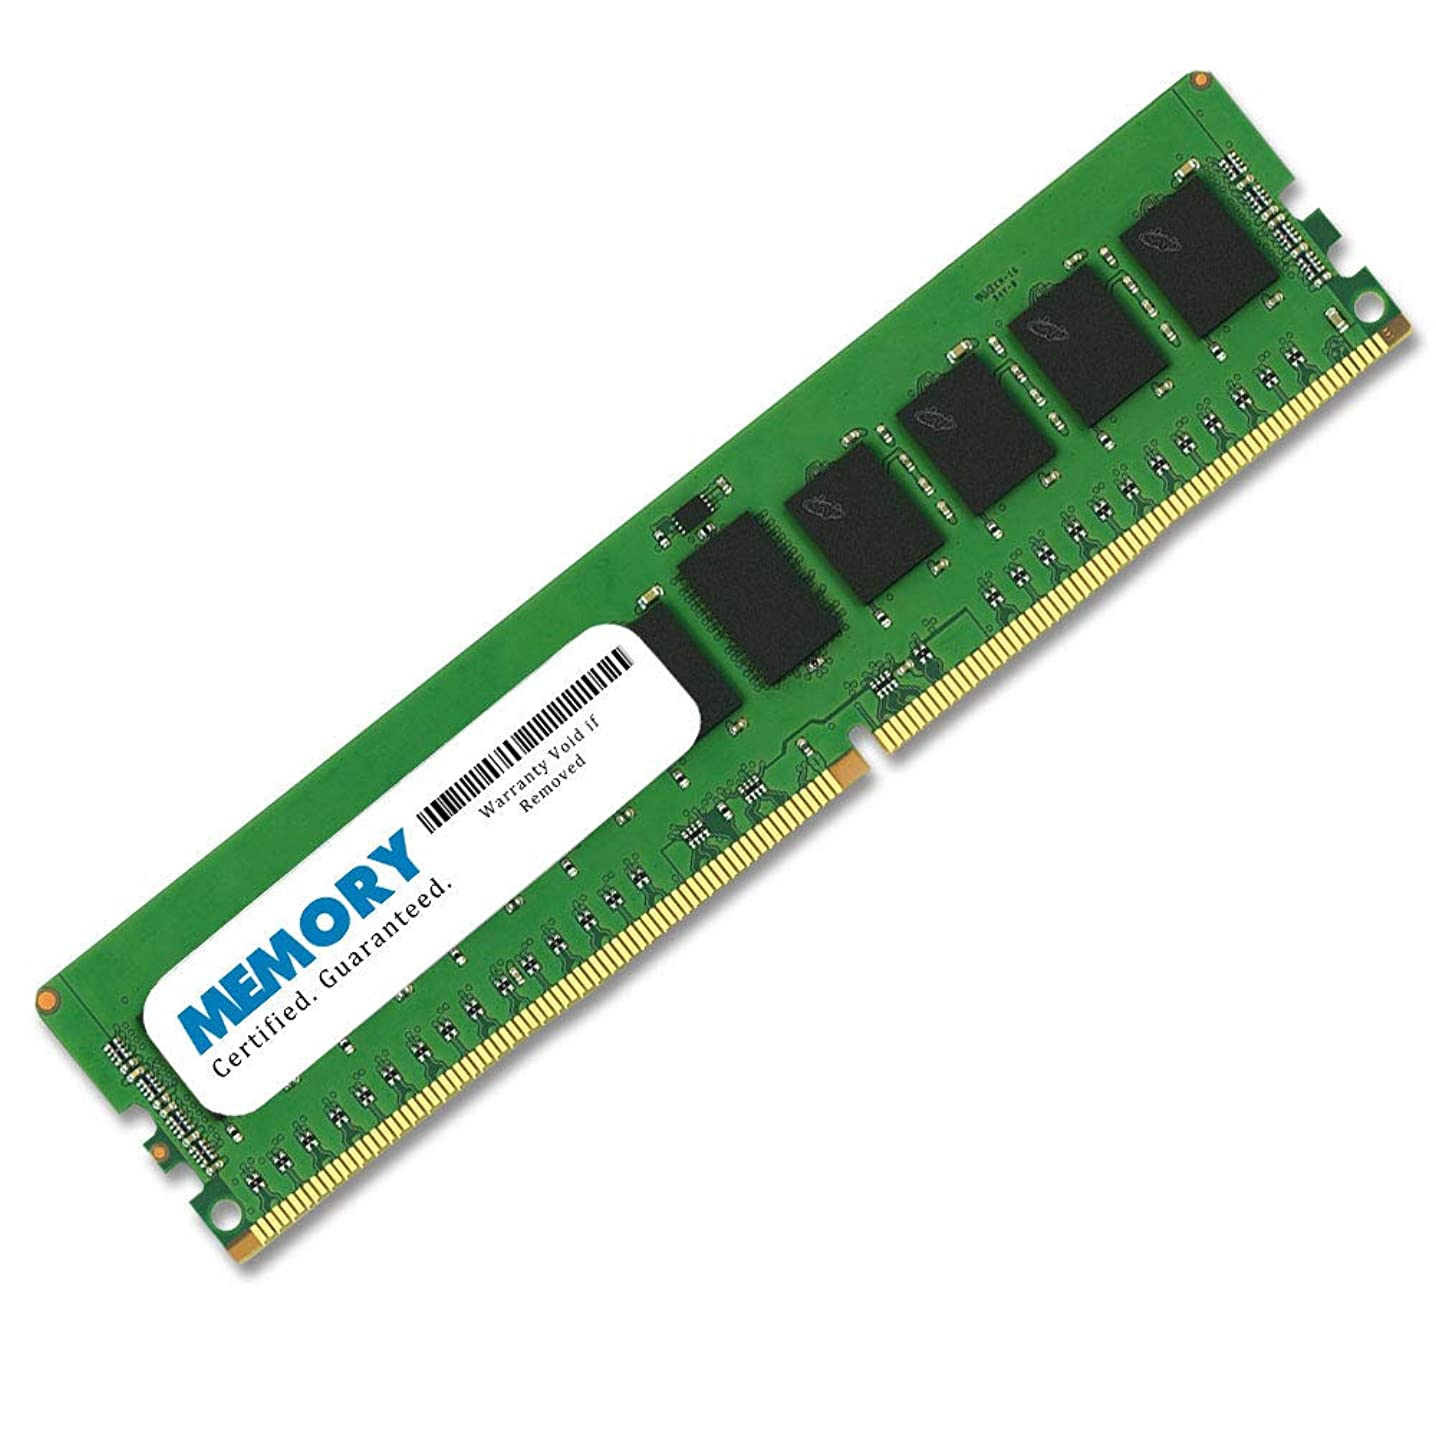 Arch Memory 4GB Replacement for Dell SNPK67DJC/4G A8711885 288-Pin DDR4 ECC RDIMM RAM for Dell PowerEdge R730 Server